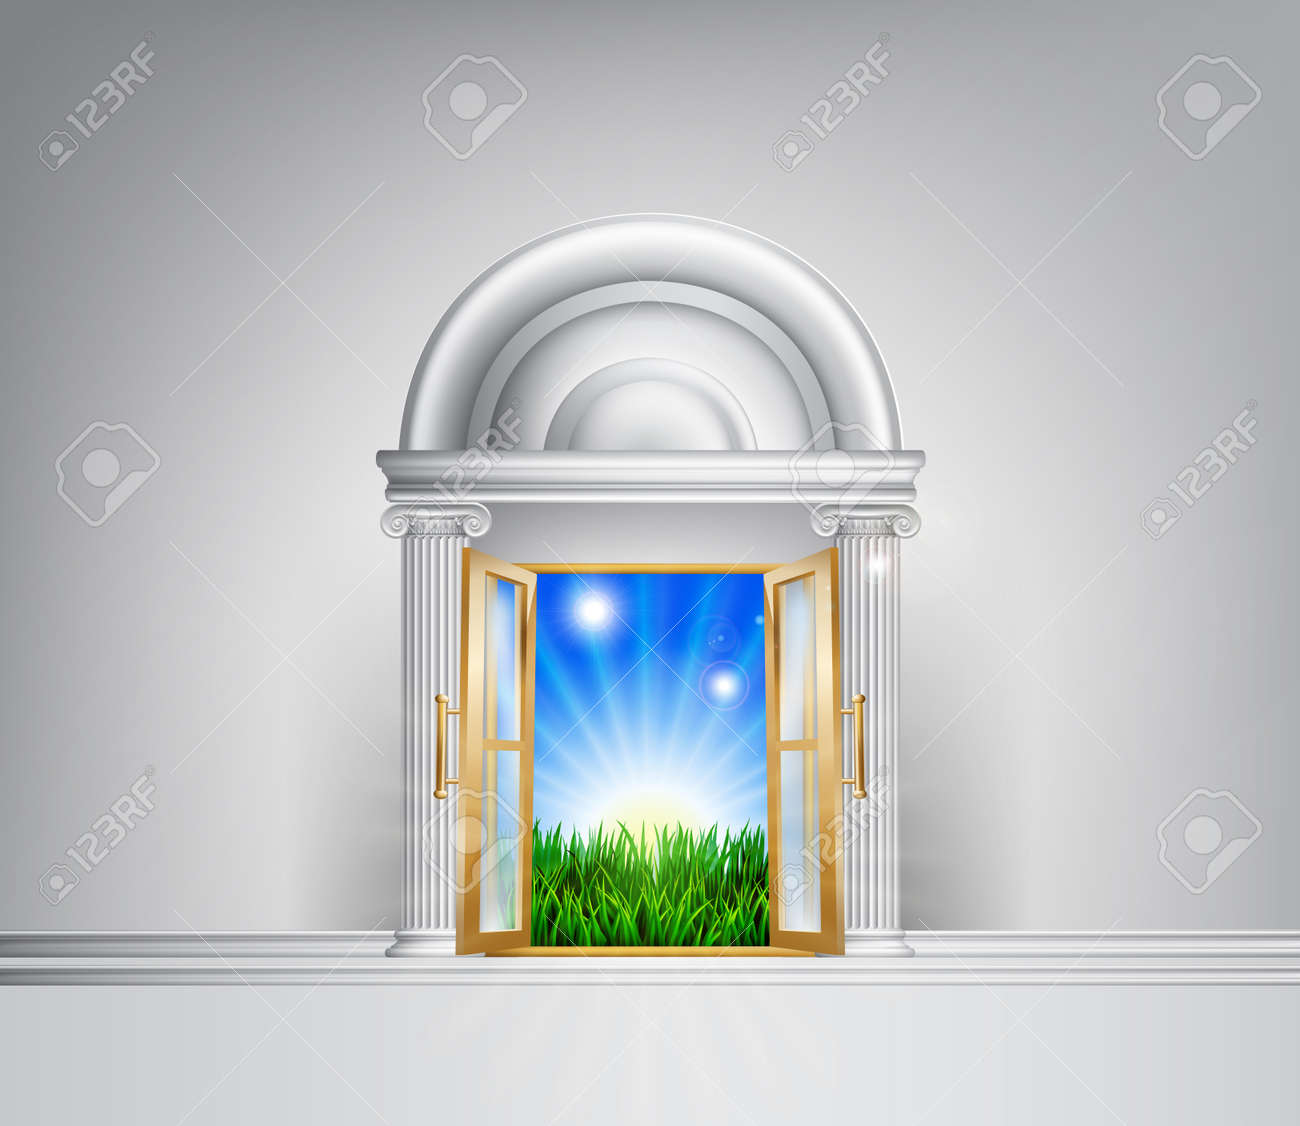 Conceptual illustration of a sunrise over fields through a grand entrance. Could be used in a self help or motivational concept or to represent hope for the future and lifestyle changes. Stock Vector - 22951253